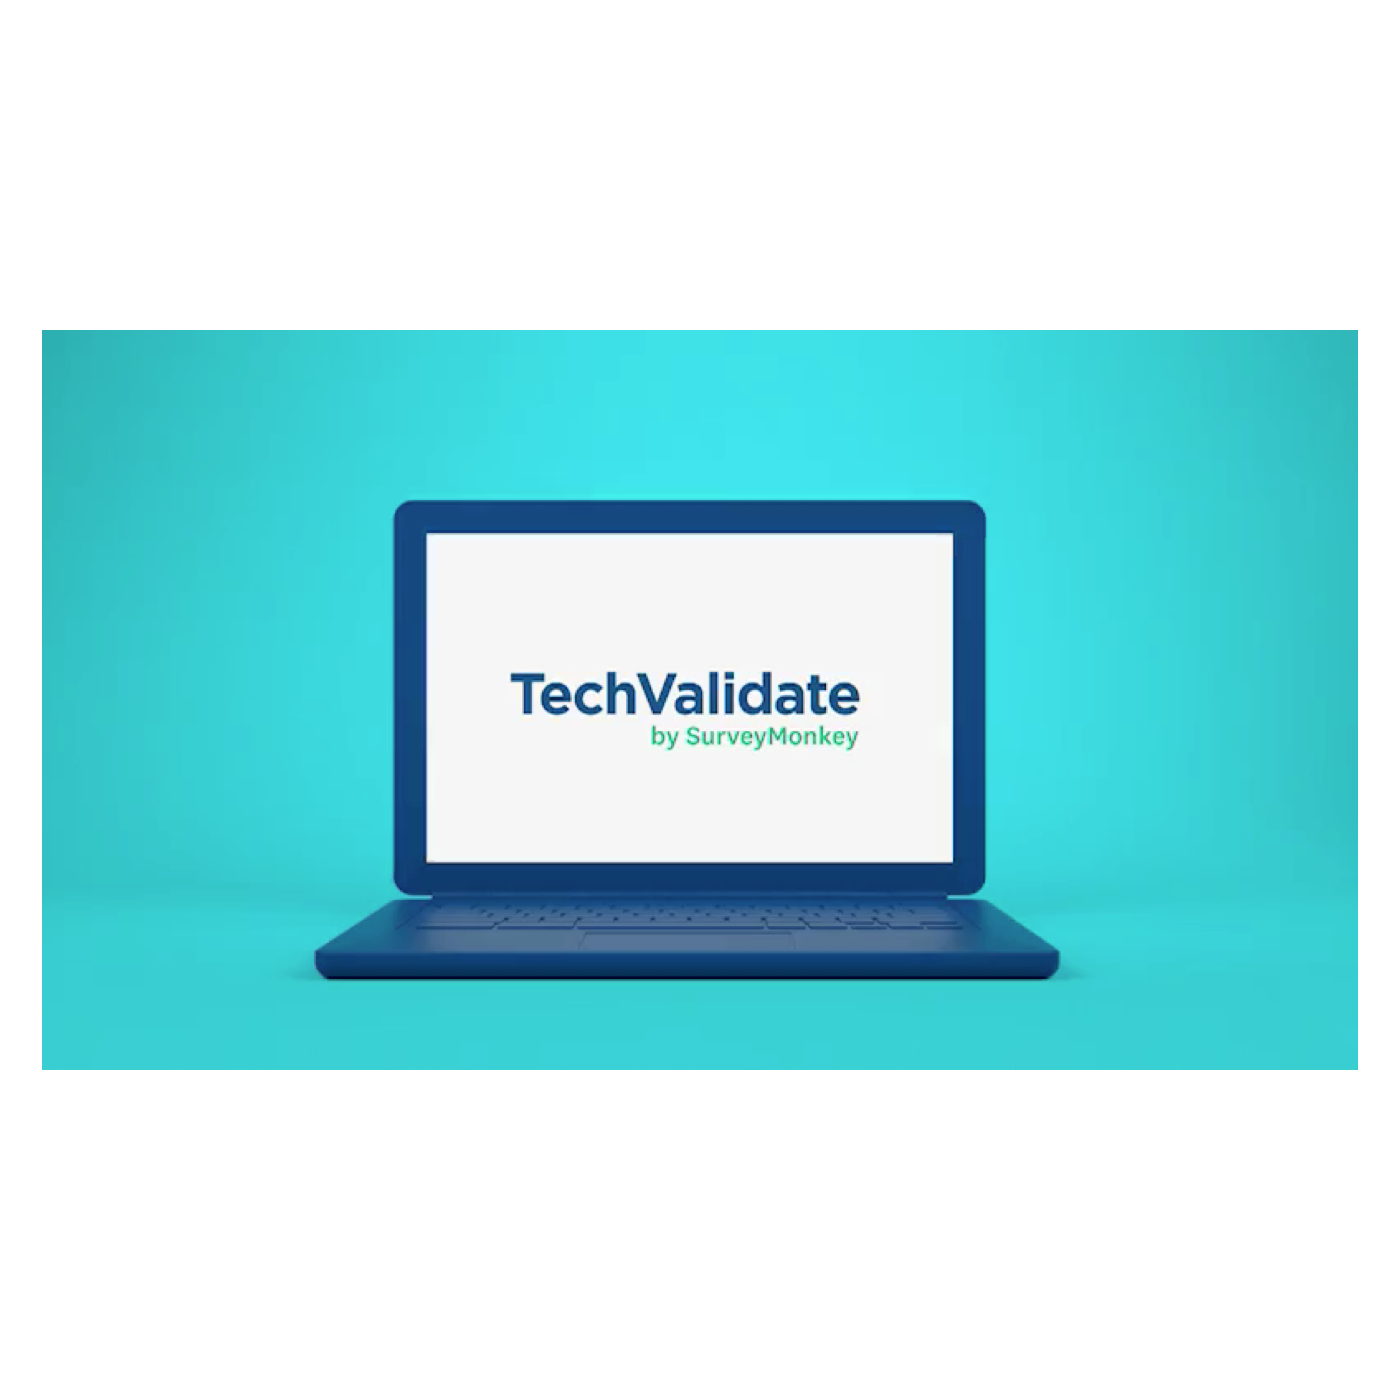 Computer with TechValidate